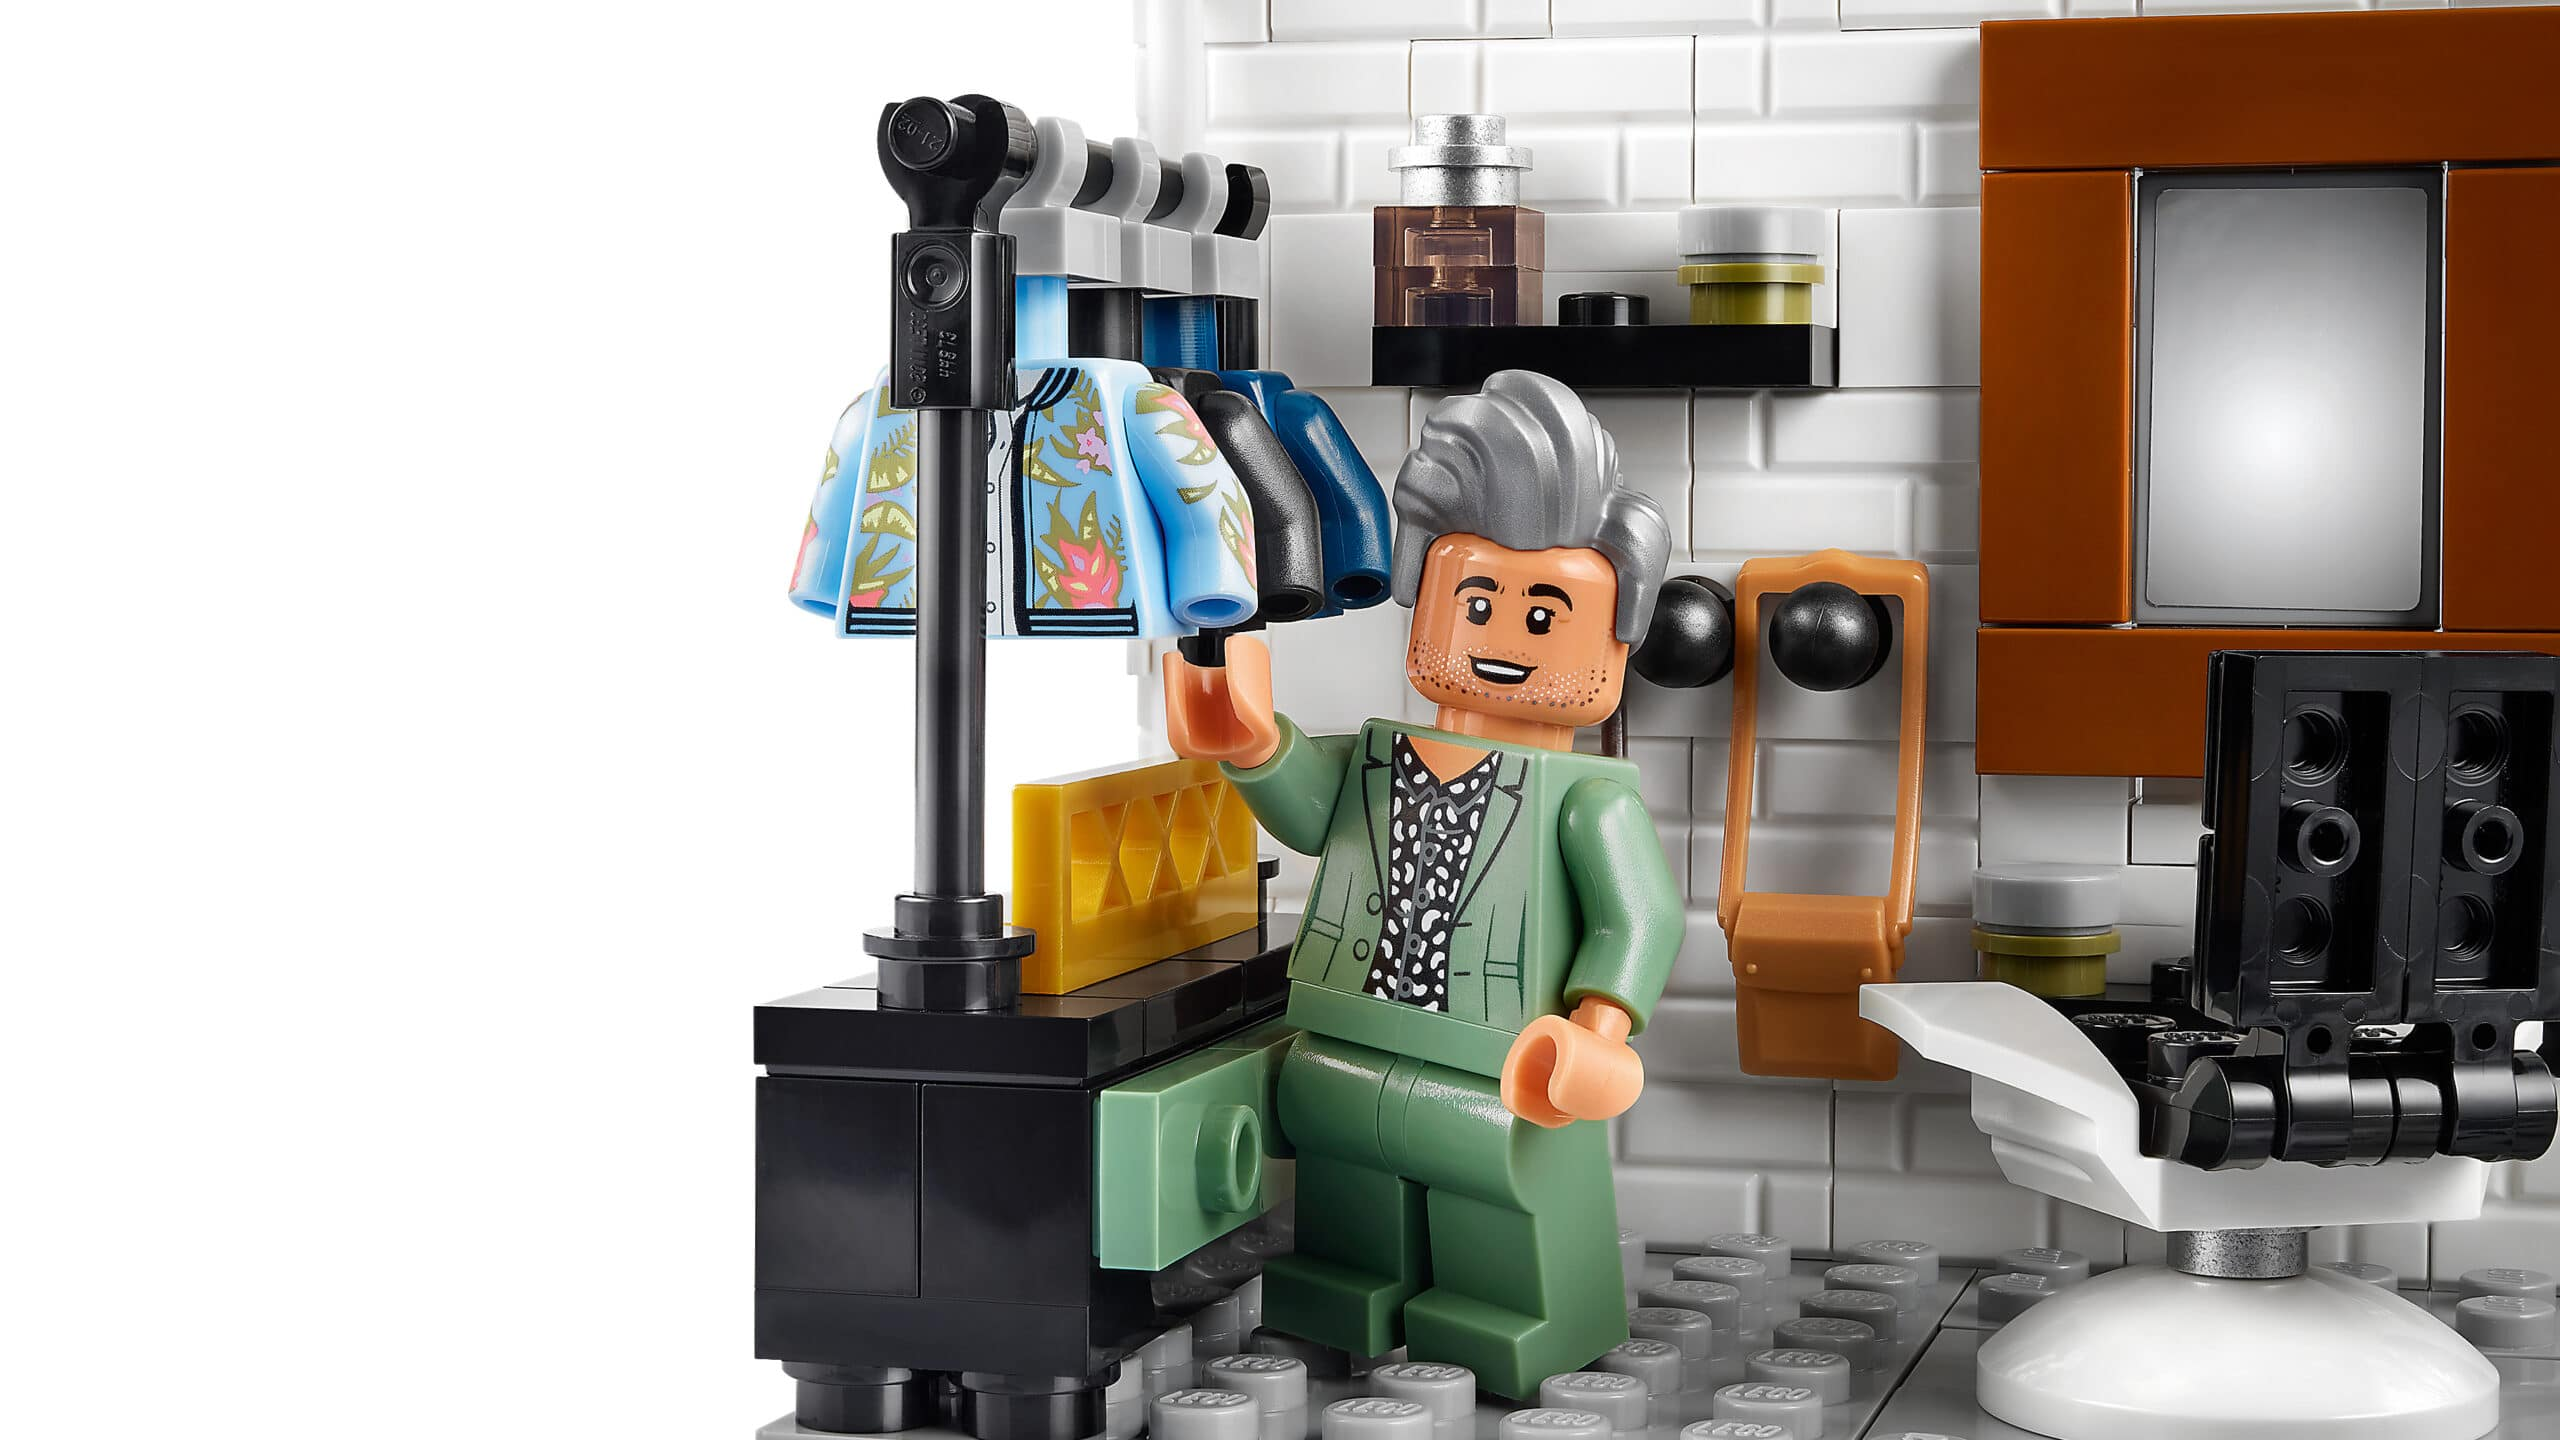 LEGO and Queer Eye create a brick model of the Fab 5 Loft 20